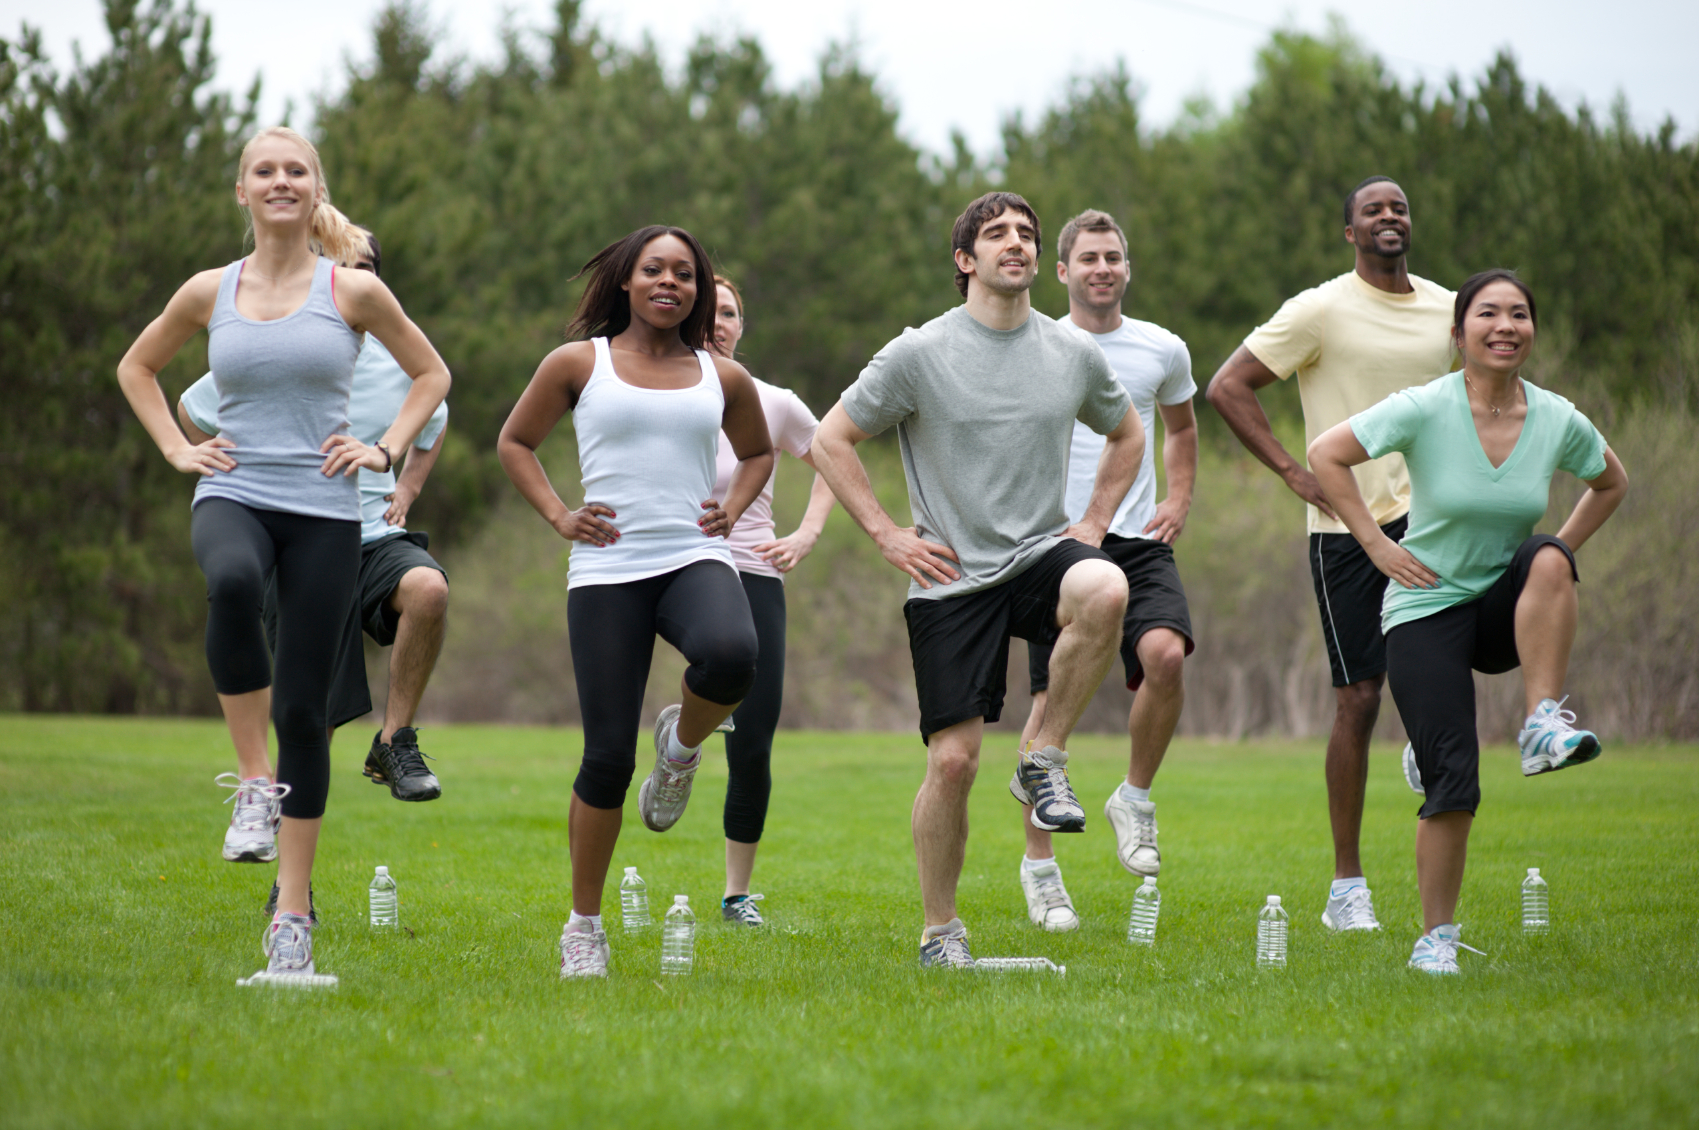 Cardio Strength Bootcamp In The Park